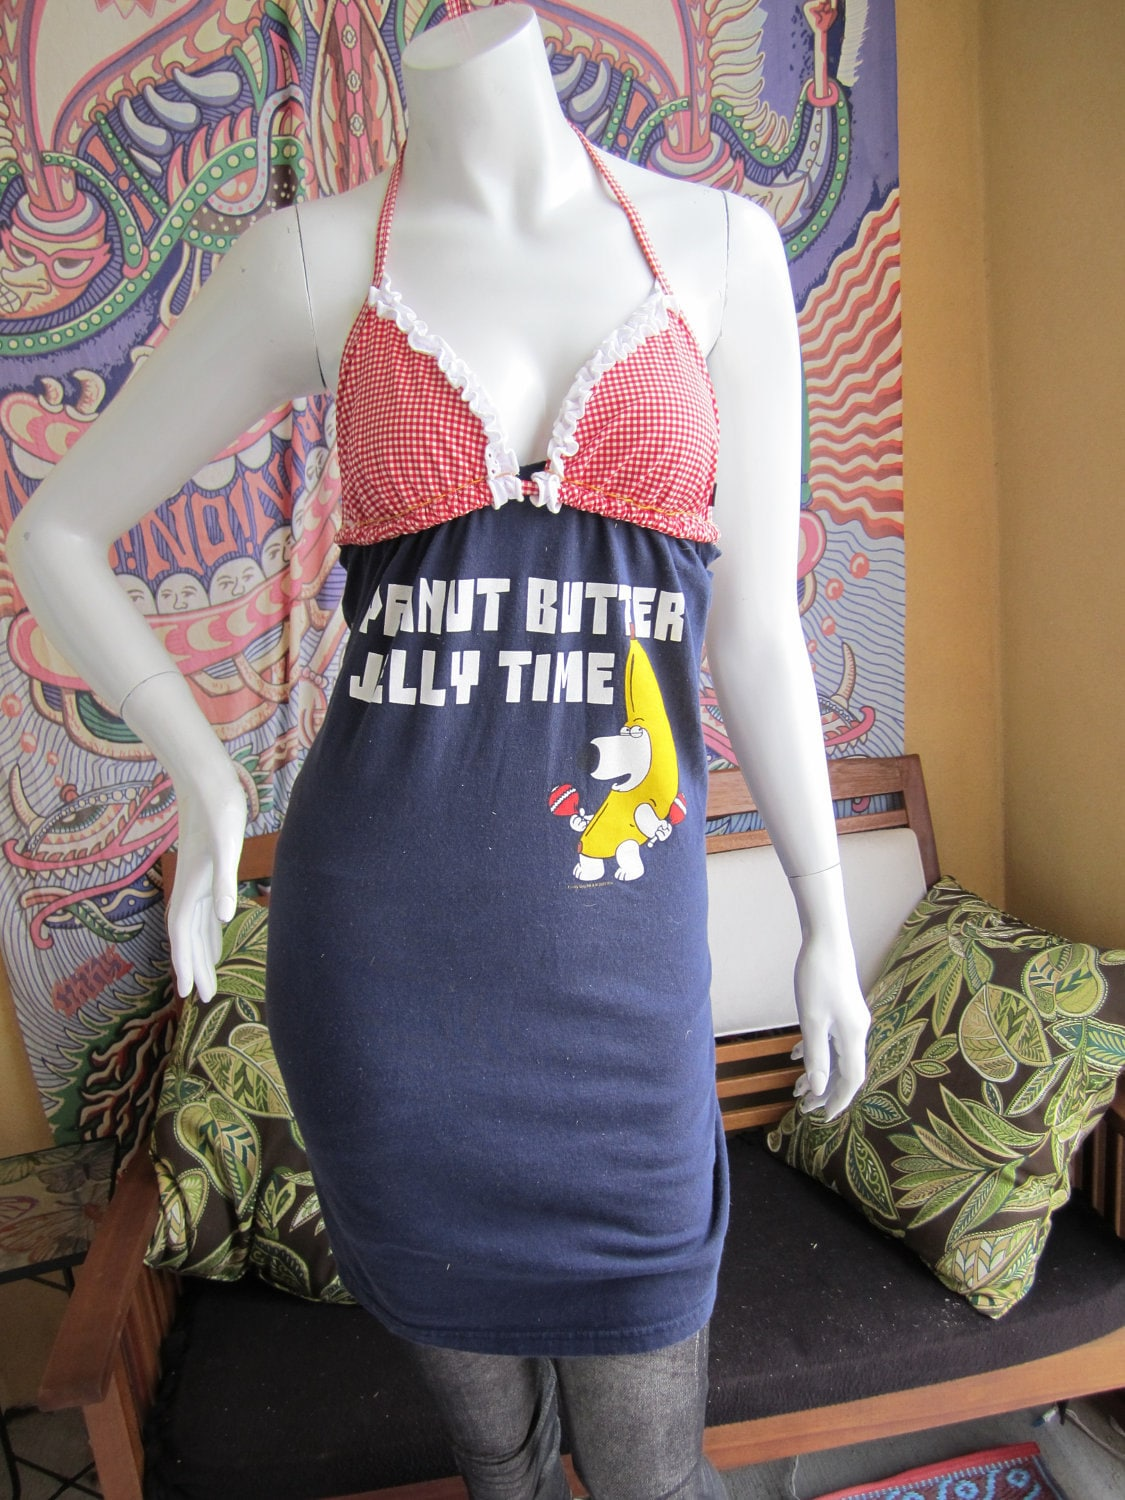 Family guy brian griffin peanut butter jelly by for Peanut butter t shirt dress